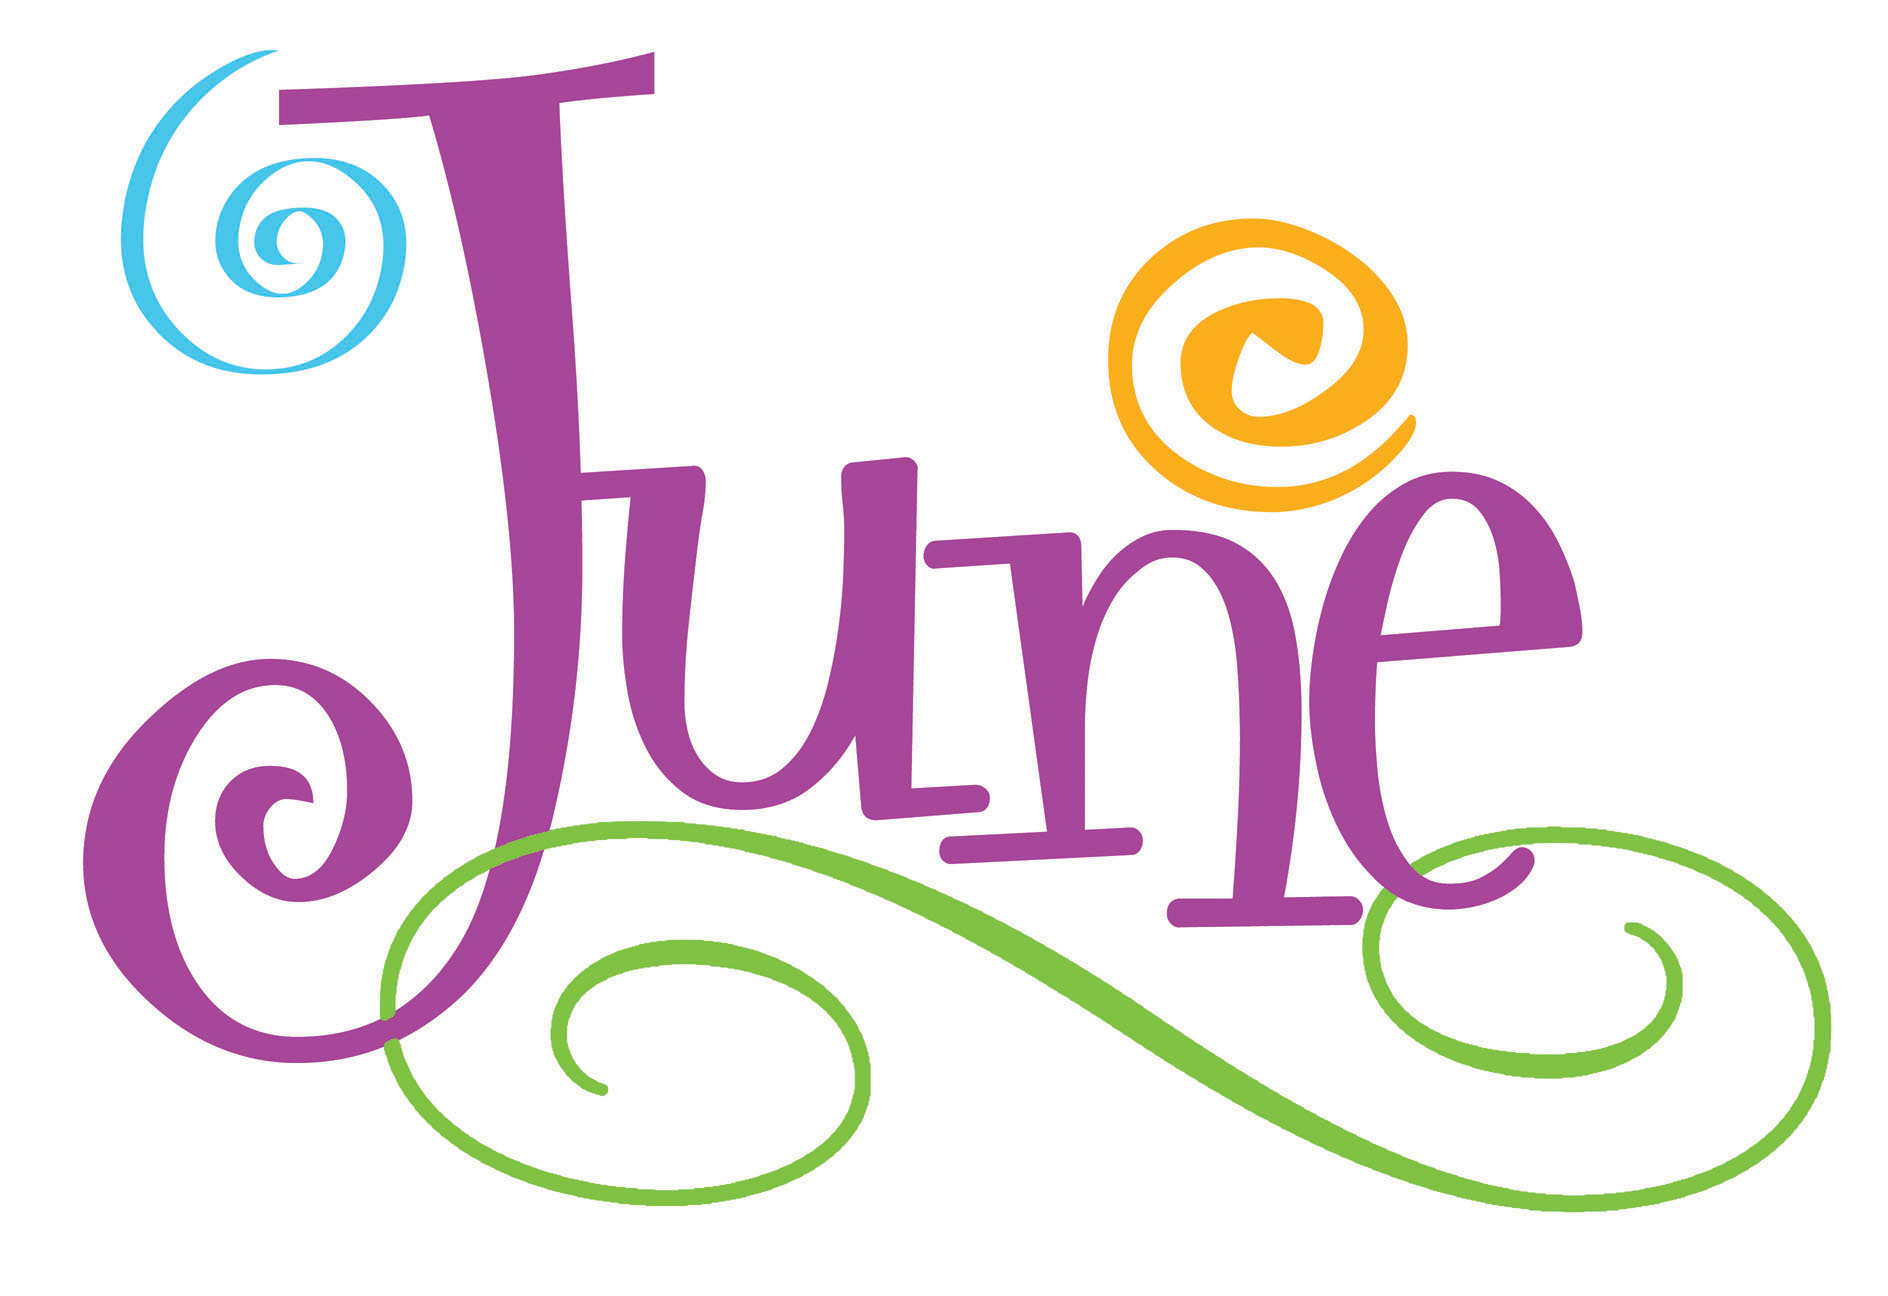 Fun clipart june For june Visions VisionsCreative pictures